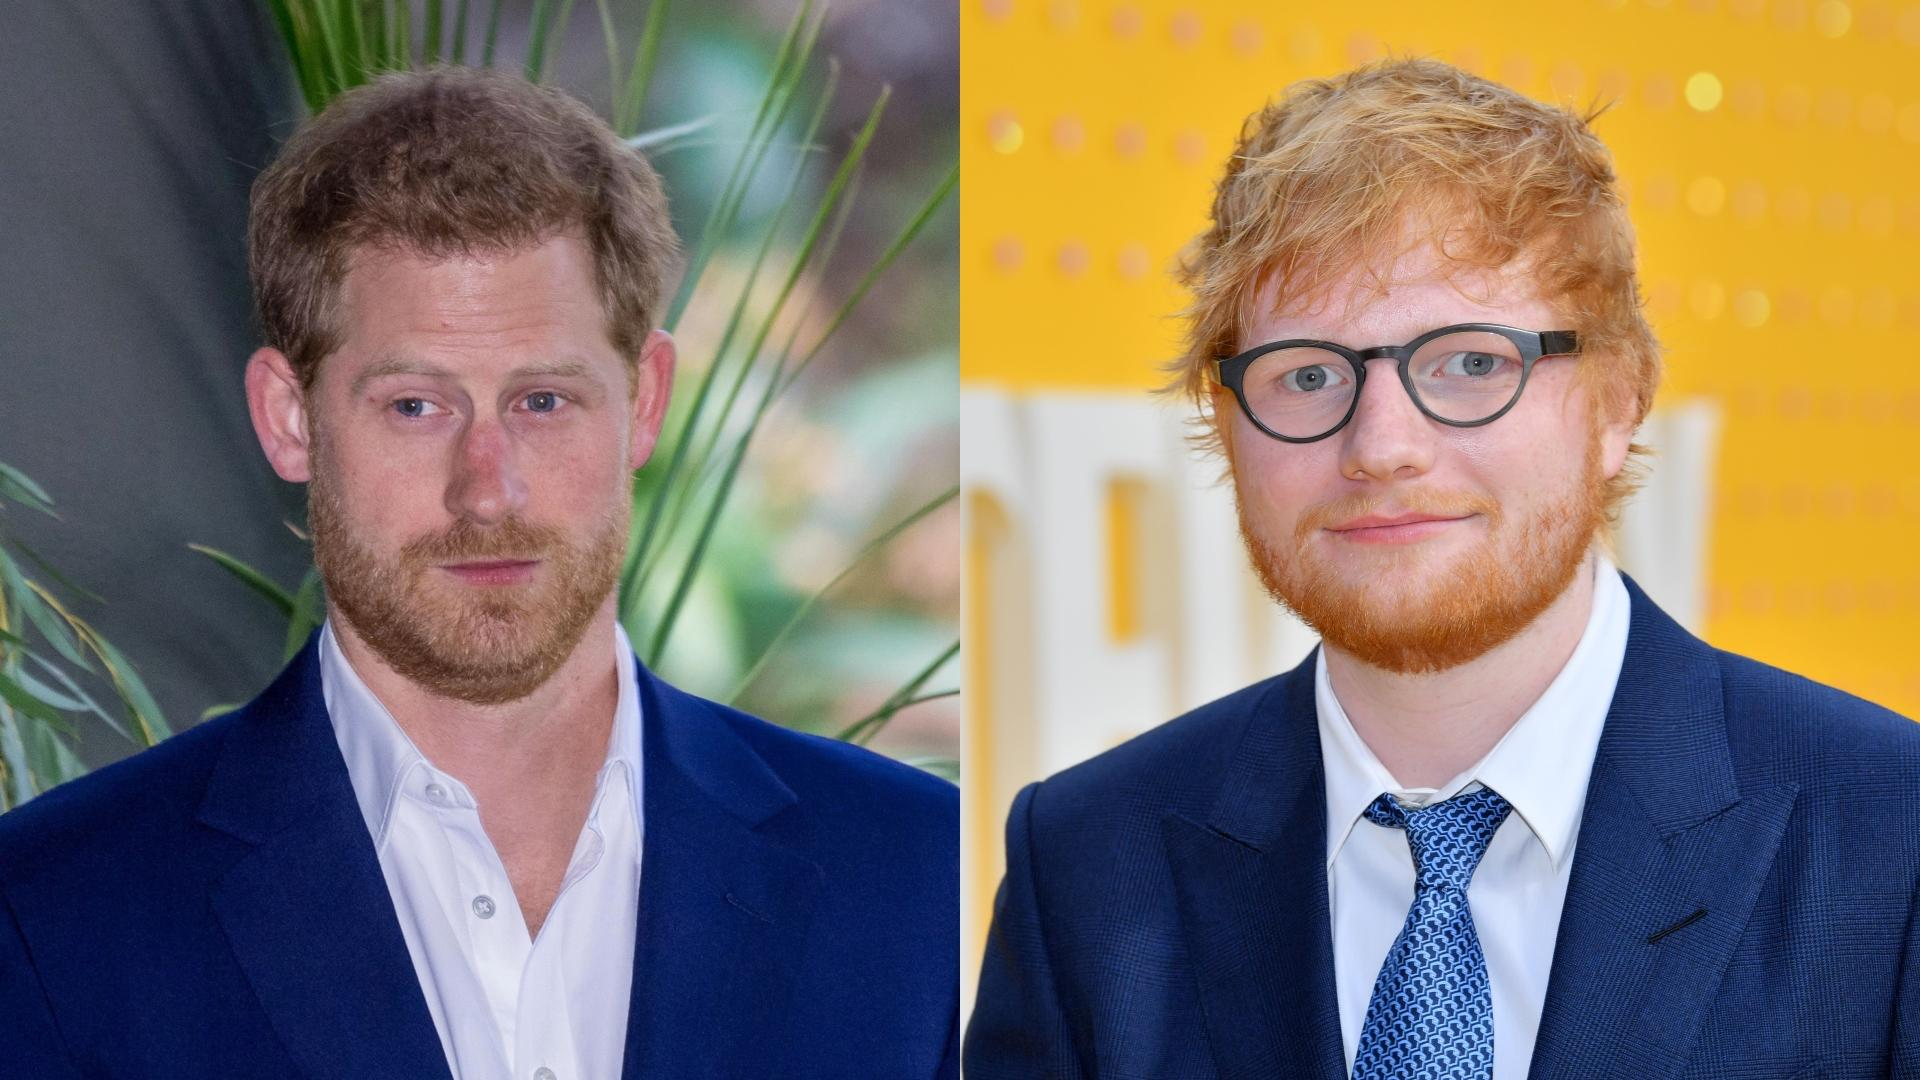 Image result for Prince Harry and Ed Sheeran team up in hilarious